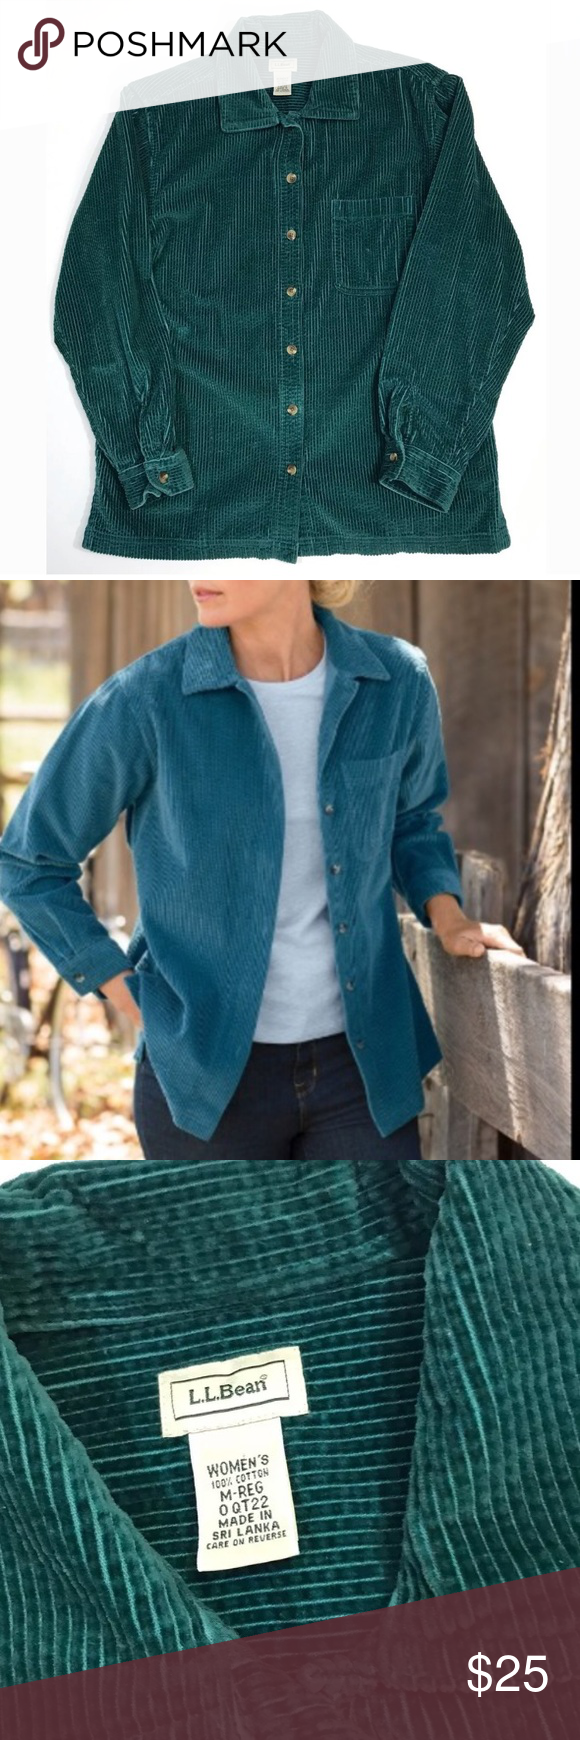 """LL Bean Button Front Wale Cord Corduroy Shirt Teal Gently worn no issues! All cotton soft wide wale cord long sleeved button Front Shirt in a rich teal green. Perfect cozy for fall layering! Women's medium. 21"""" across bust from underarm to underarm 26.5"""" from shoulder to bottom hem. L.L. Bean Tops Button Down Shirts"""